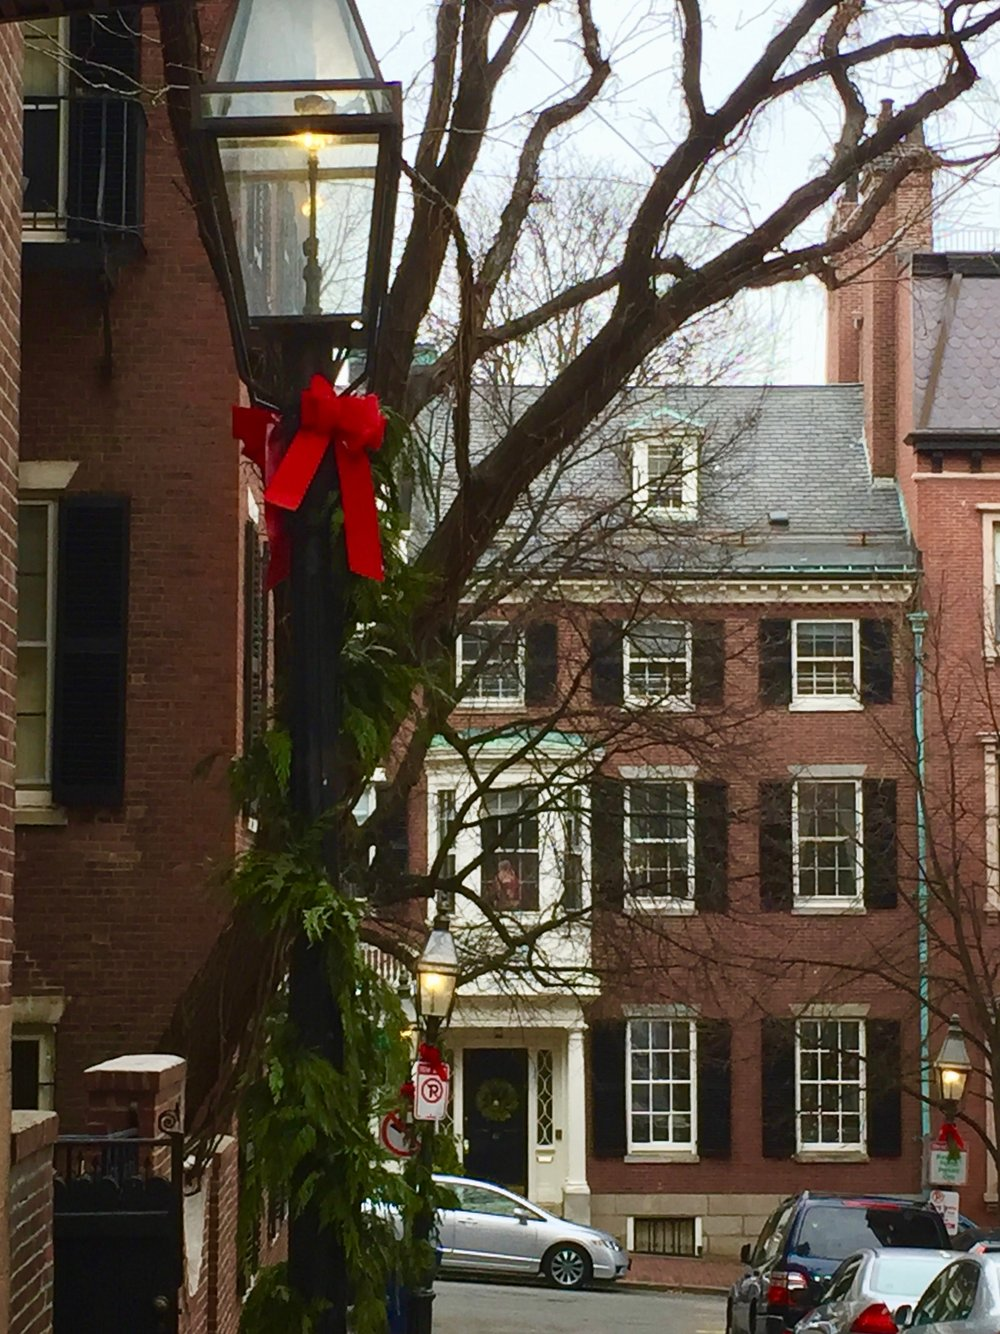 Beacon Hill at Christmastime